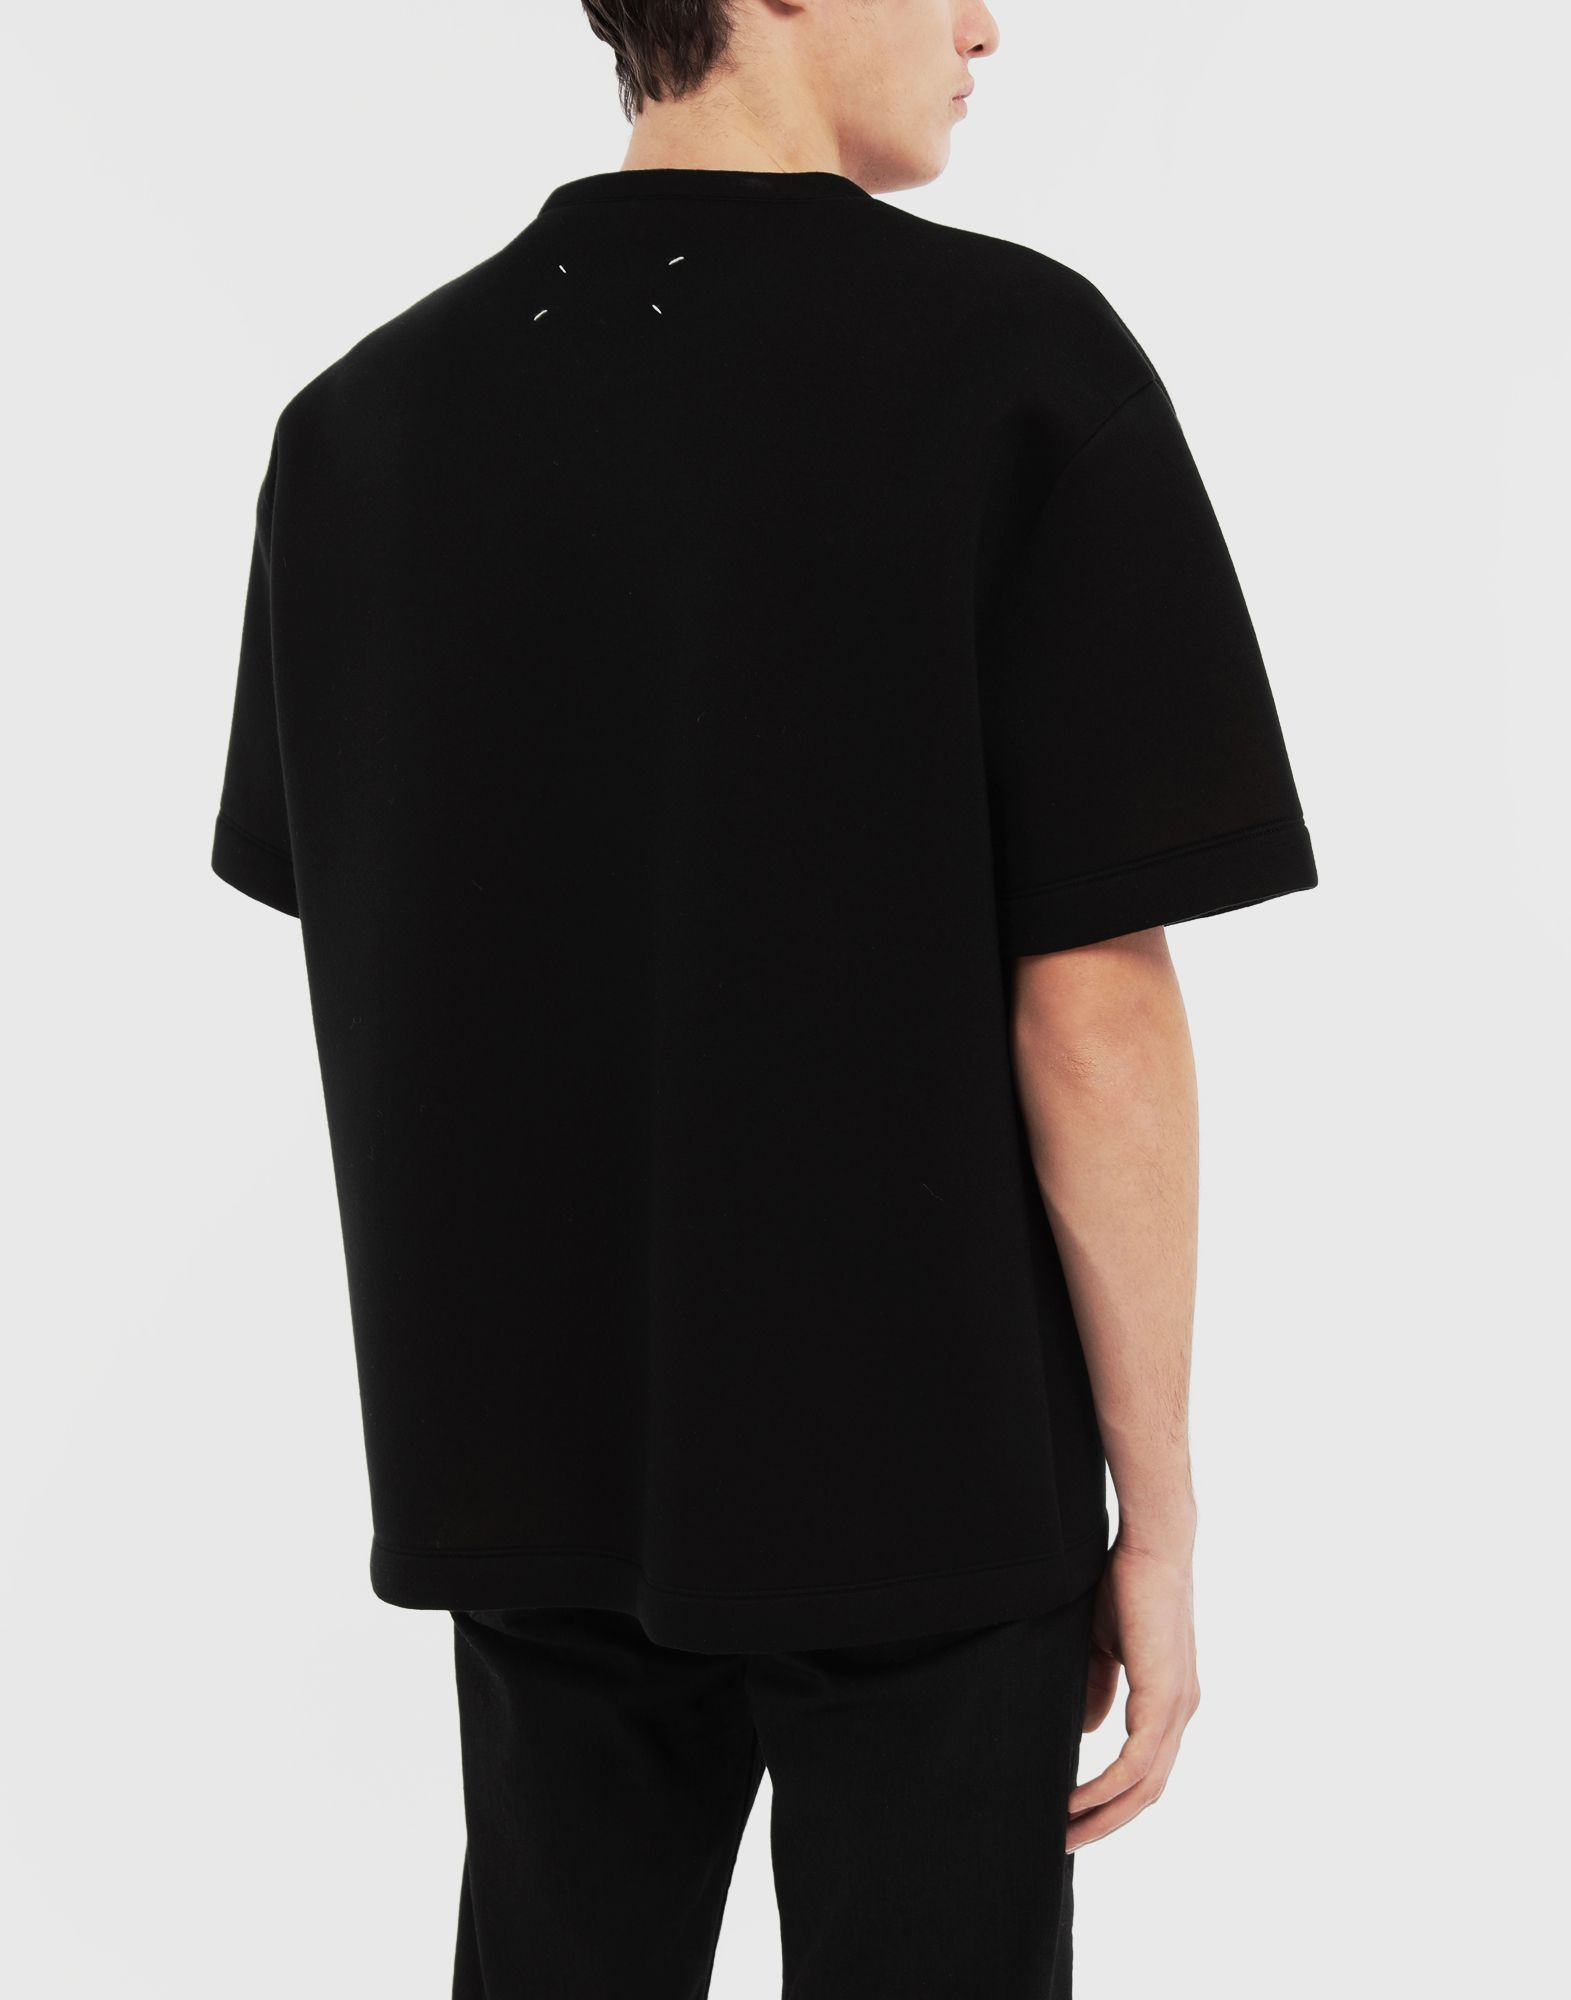 MAISON MARGIELA Scuba oversized top Short sleeve t-shirt Man e